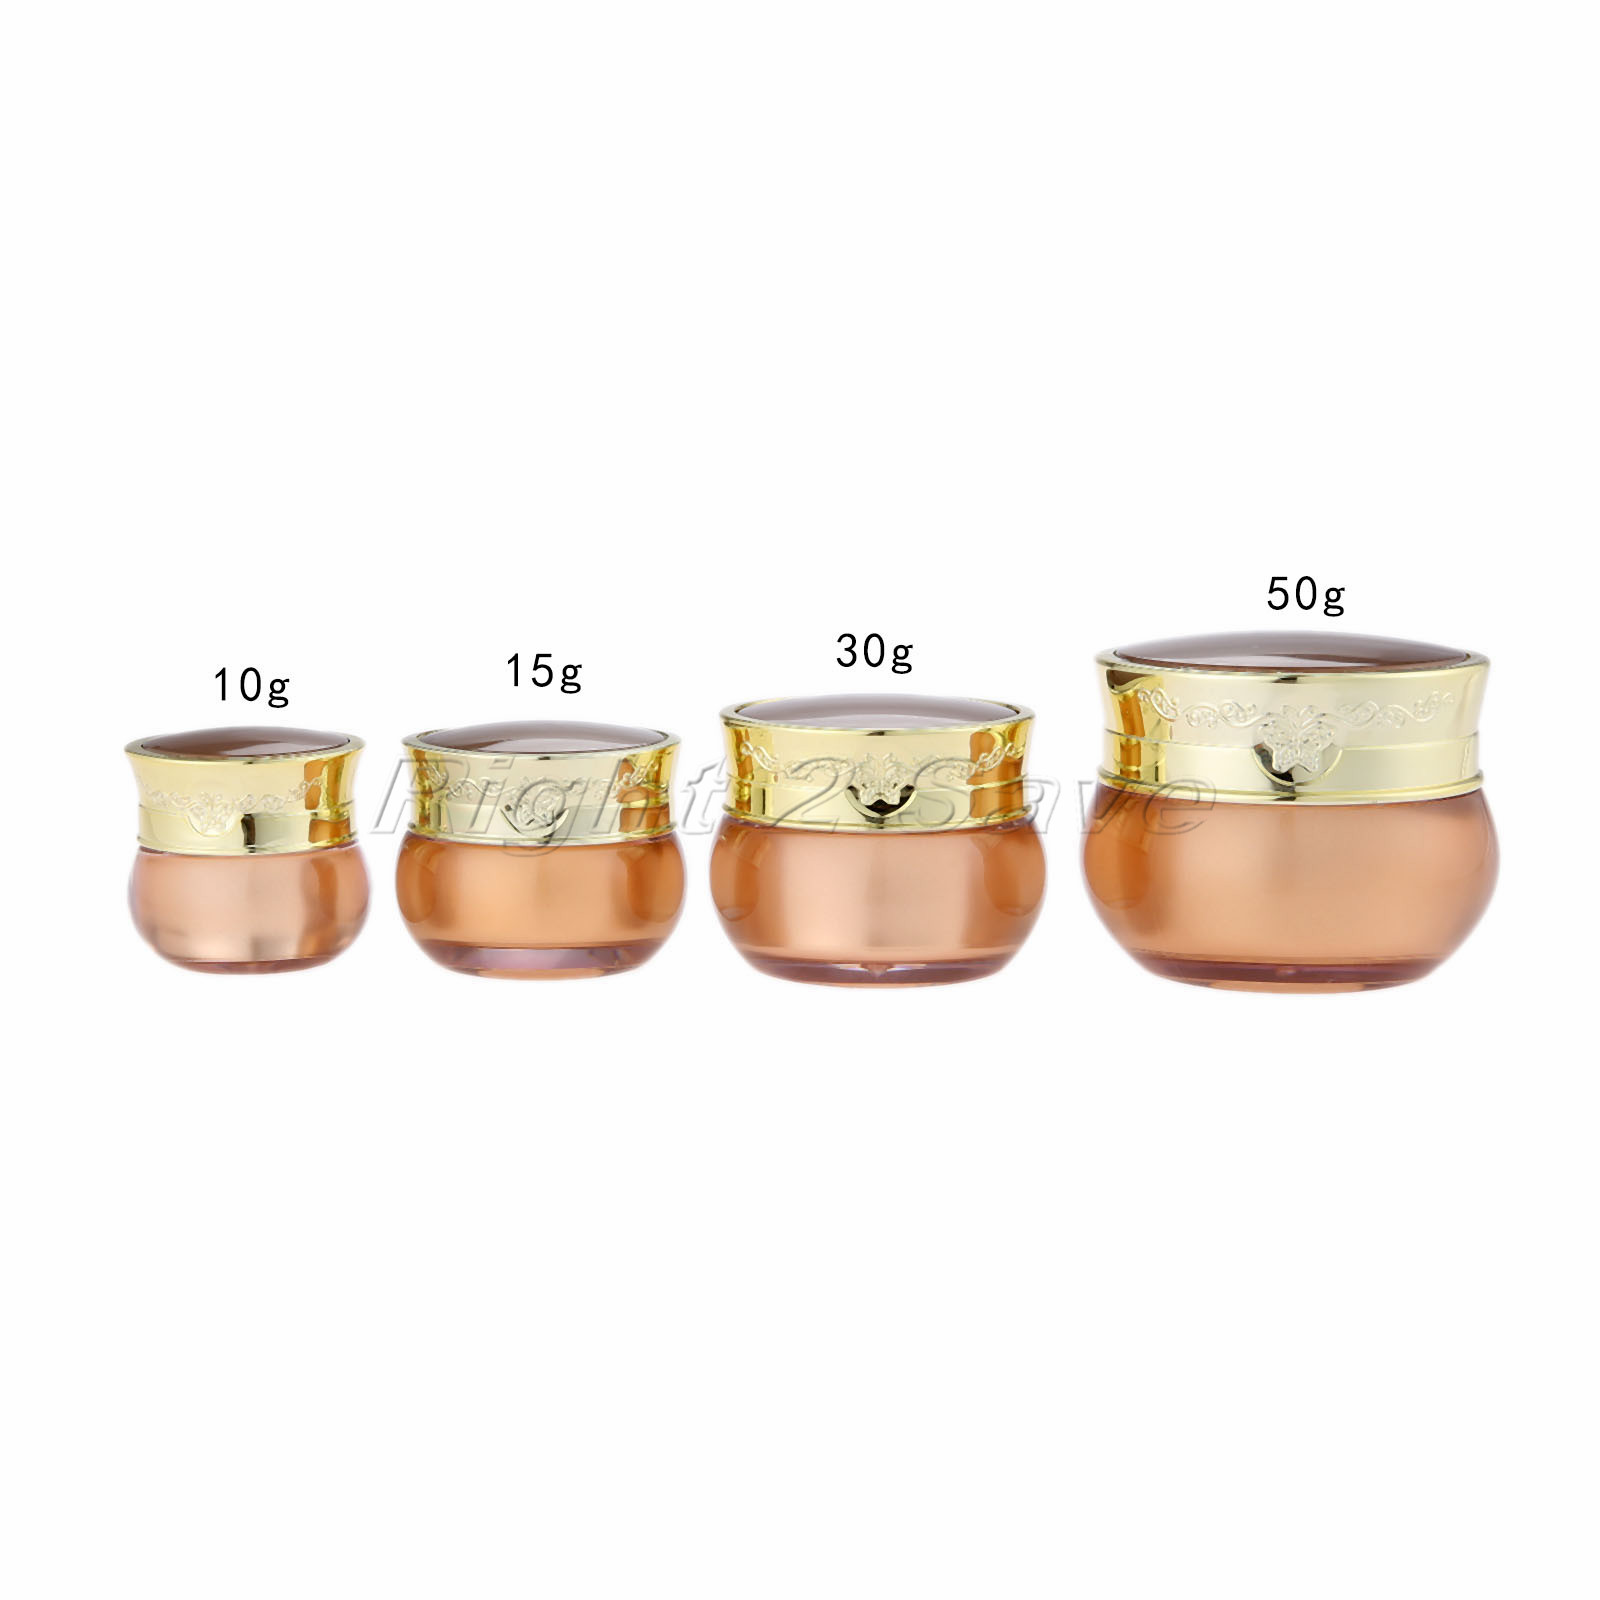 Acrylic Jar 10g/15g/30g/50g Gold Face Cream Pot Cosmetic Container Butterfly decoration Empty Packaging Bottle Portable Travel